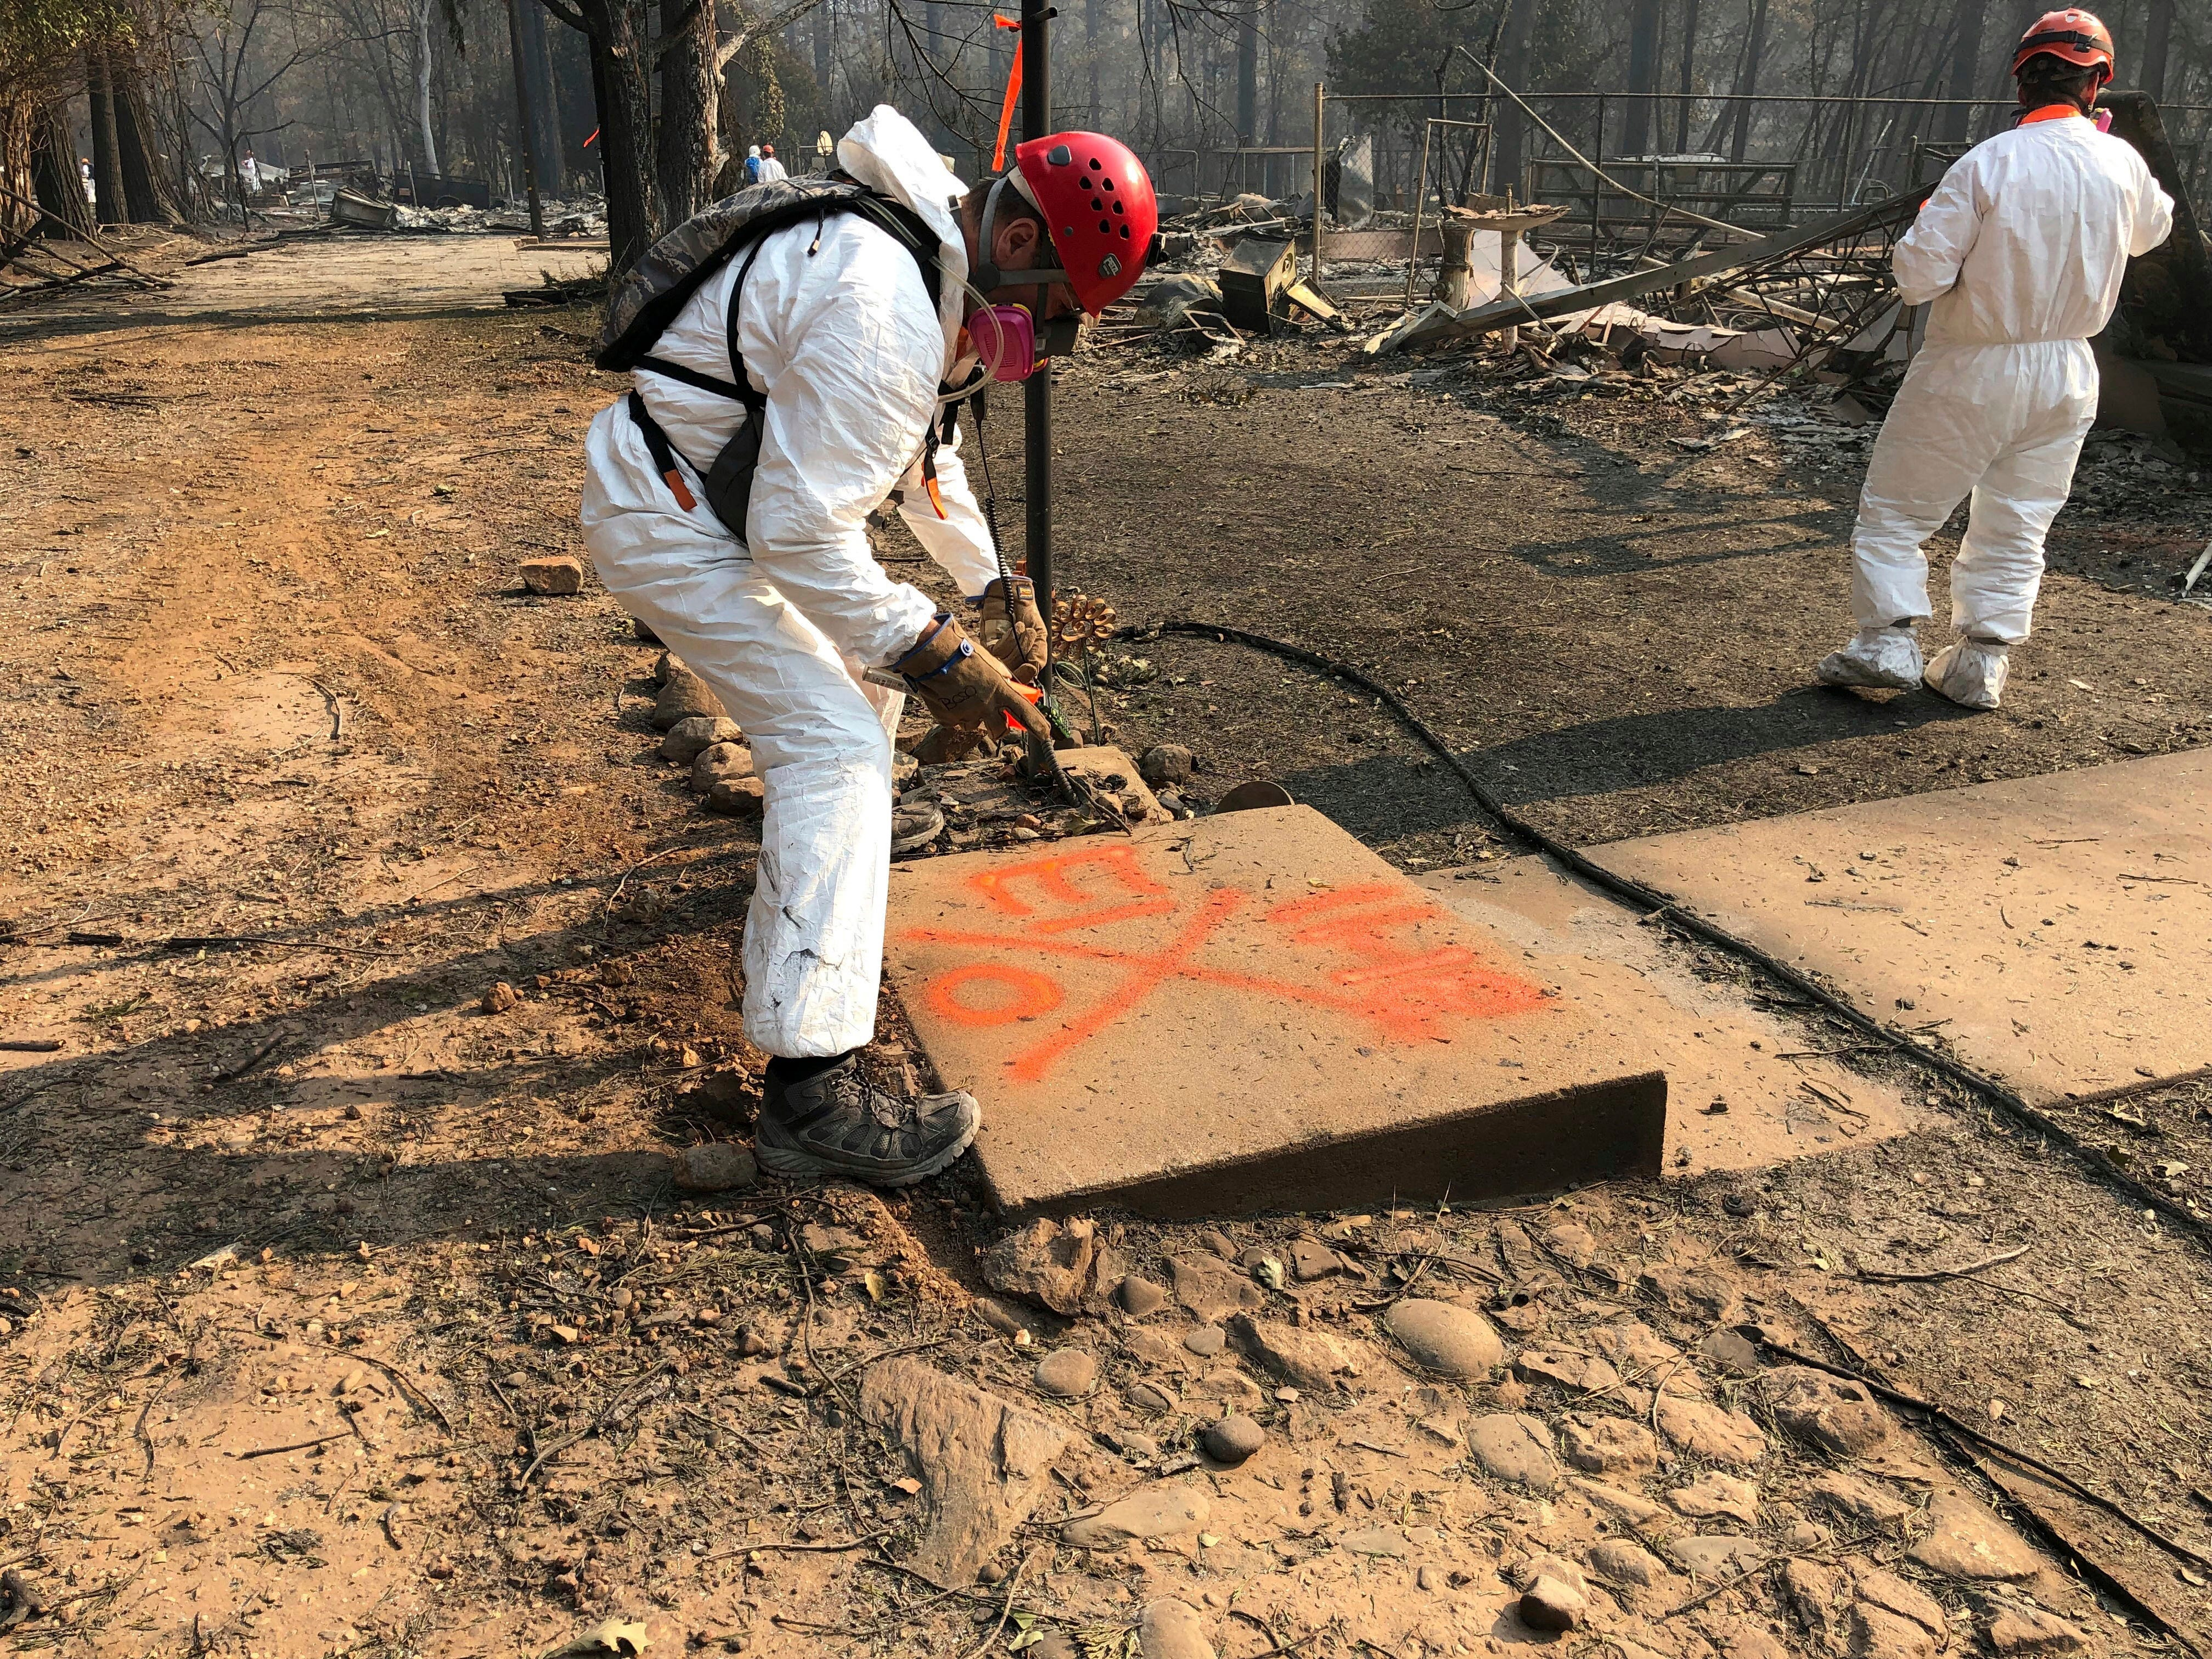 A volunteer member of an El Dorado County search and rescue team uses orange spray paint to mark the ruins of a home to show that no human remains were found at the location in Paradise, Calif. on  Nov. 18, 2018.